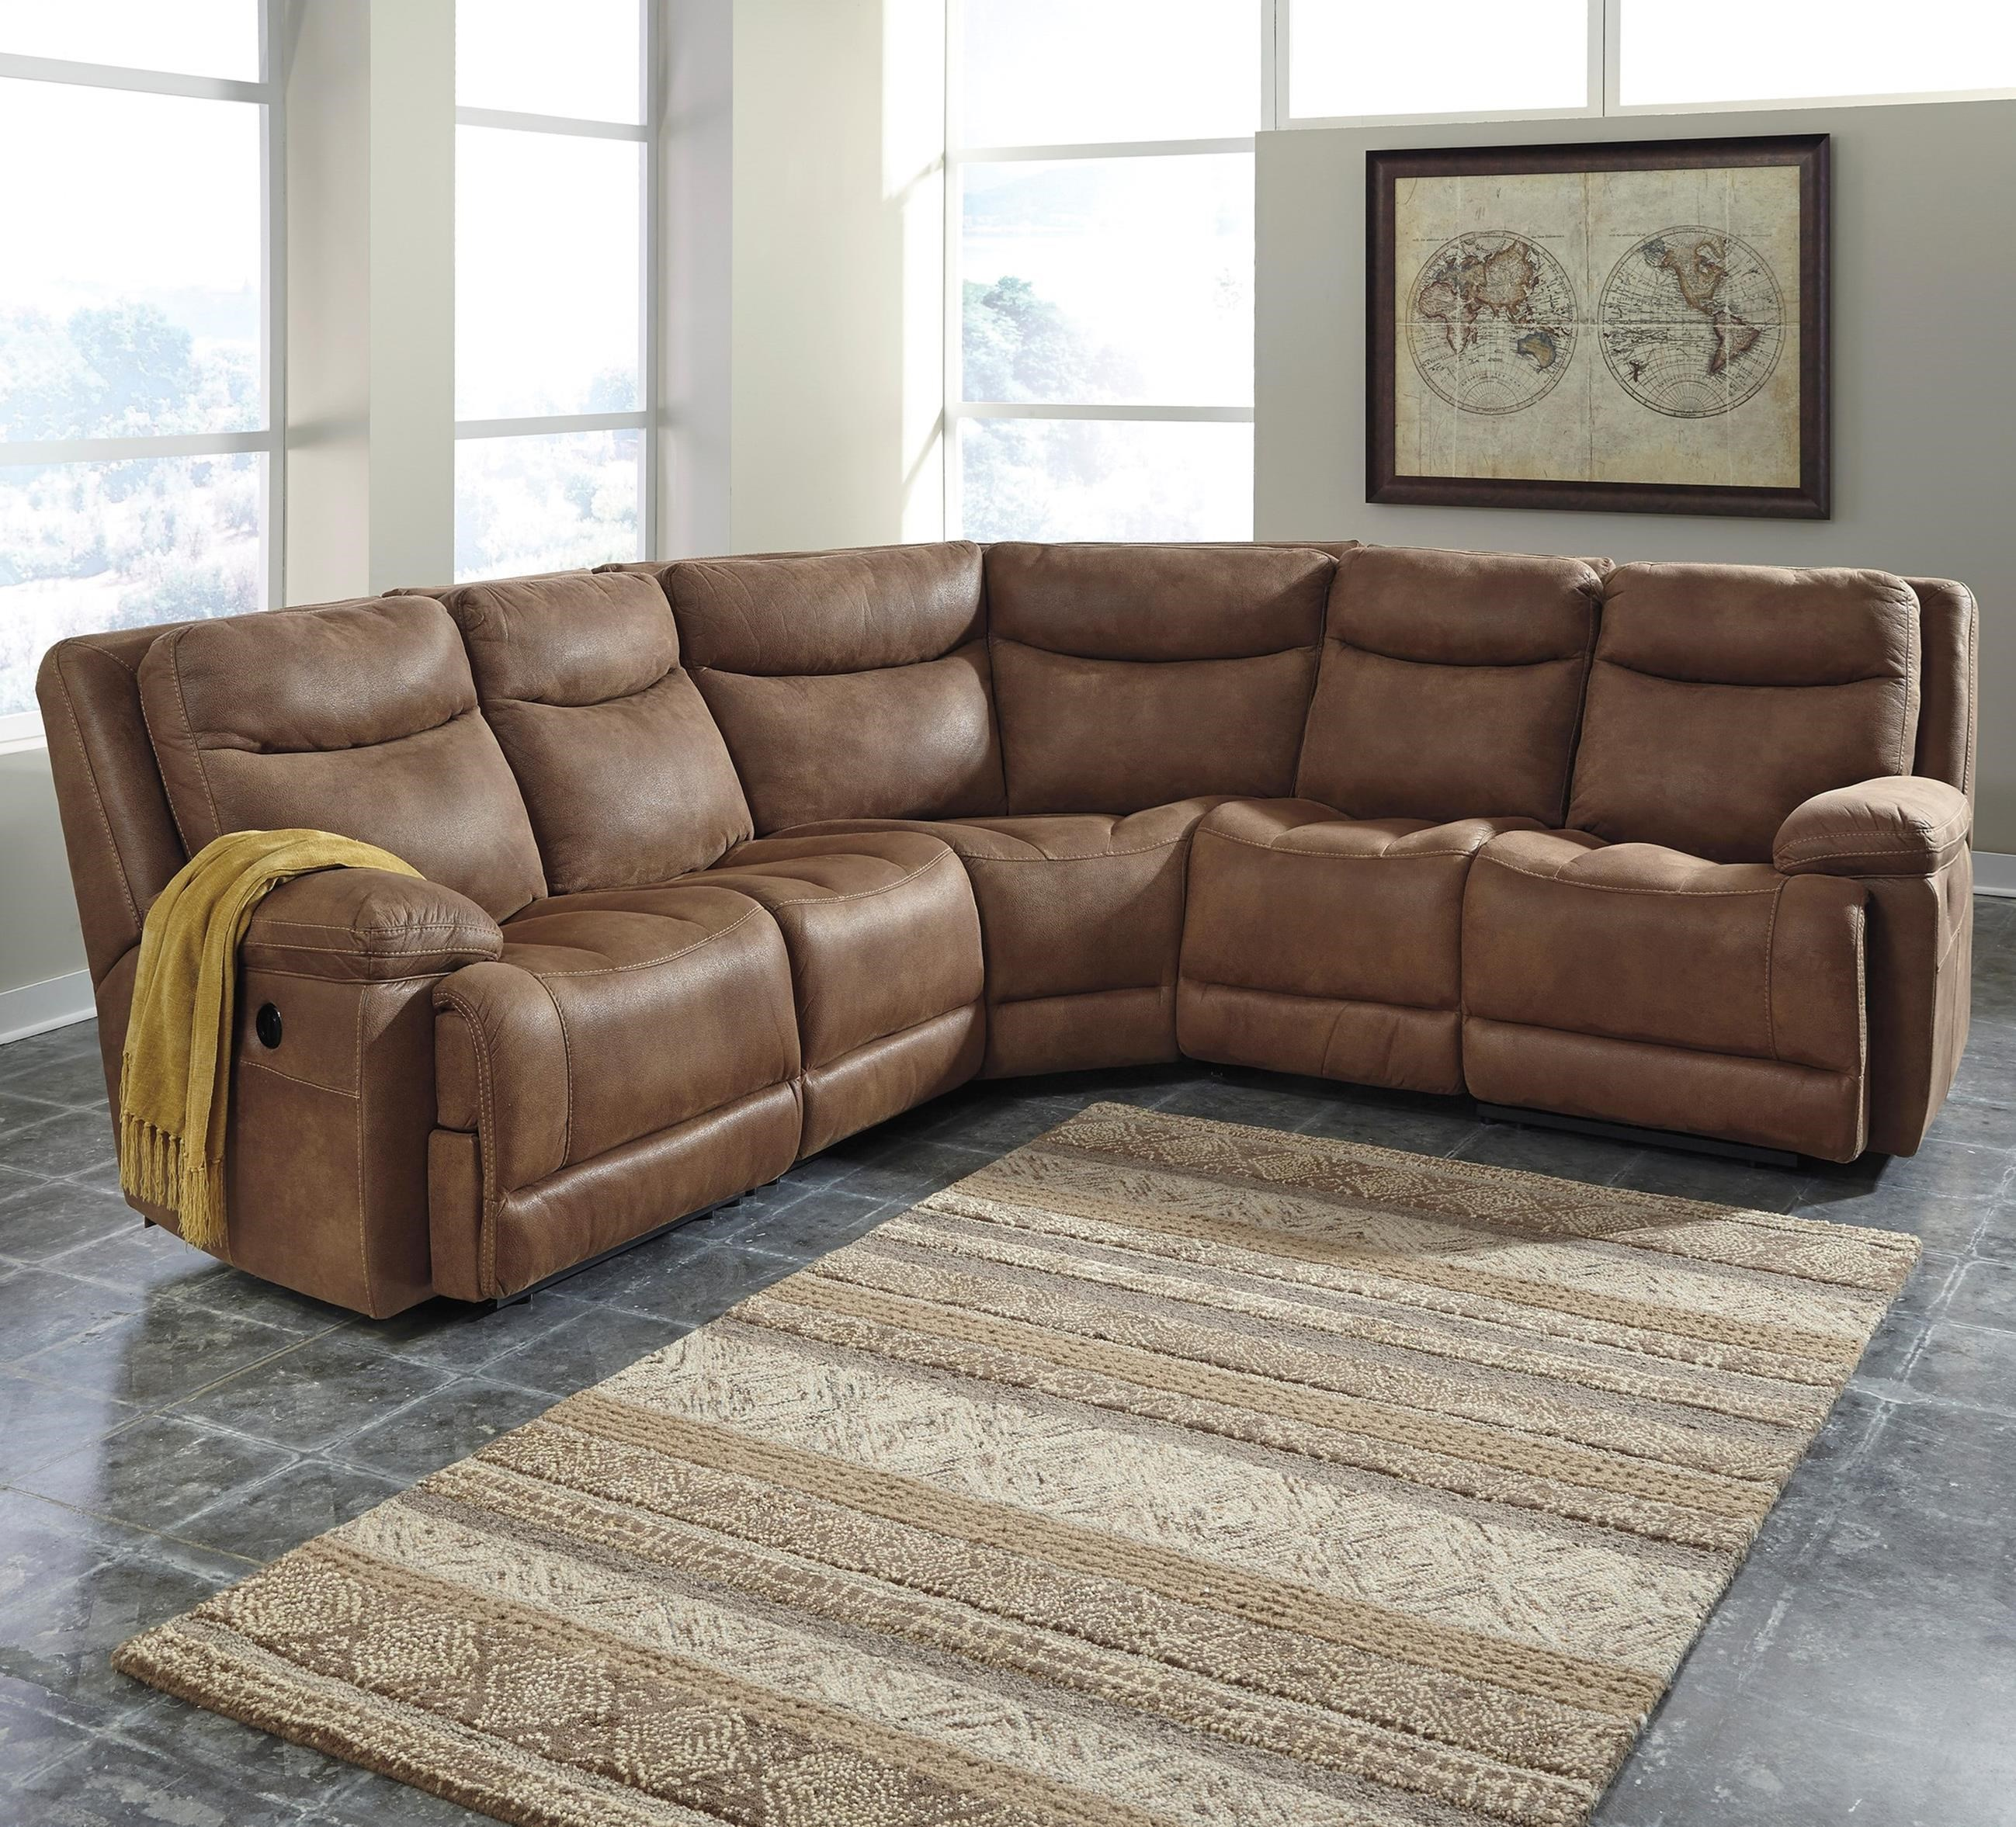 Signature Design by Ashley Valto 5-Piece Power Reclining Sectional - Item Number: 7940058+19+77+46+62